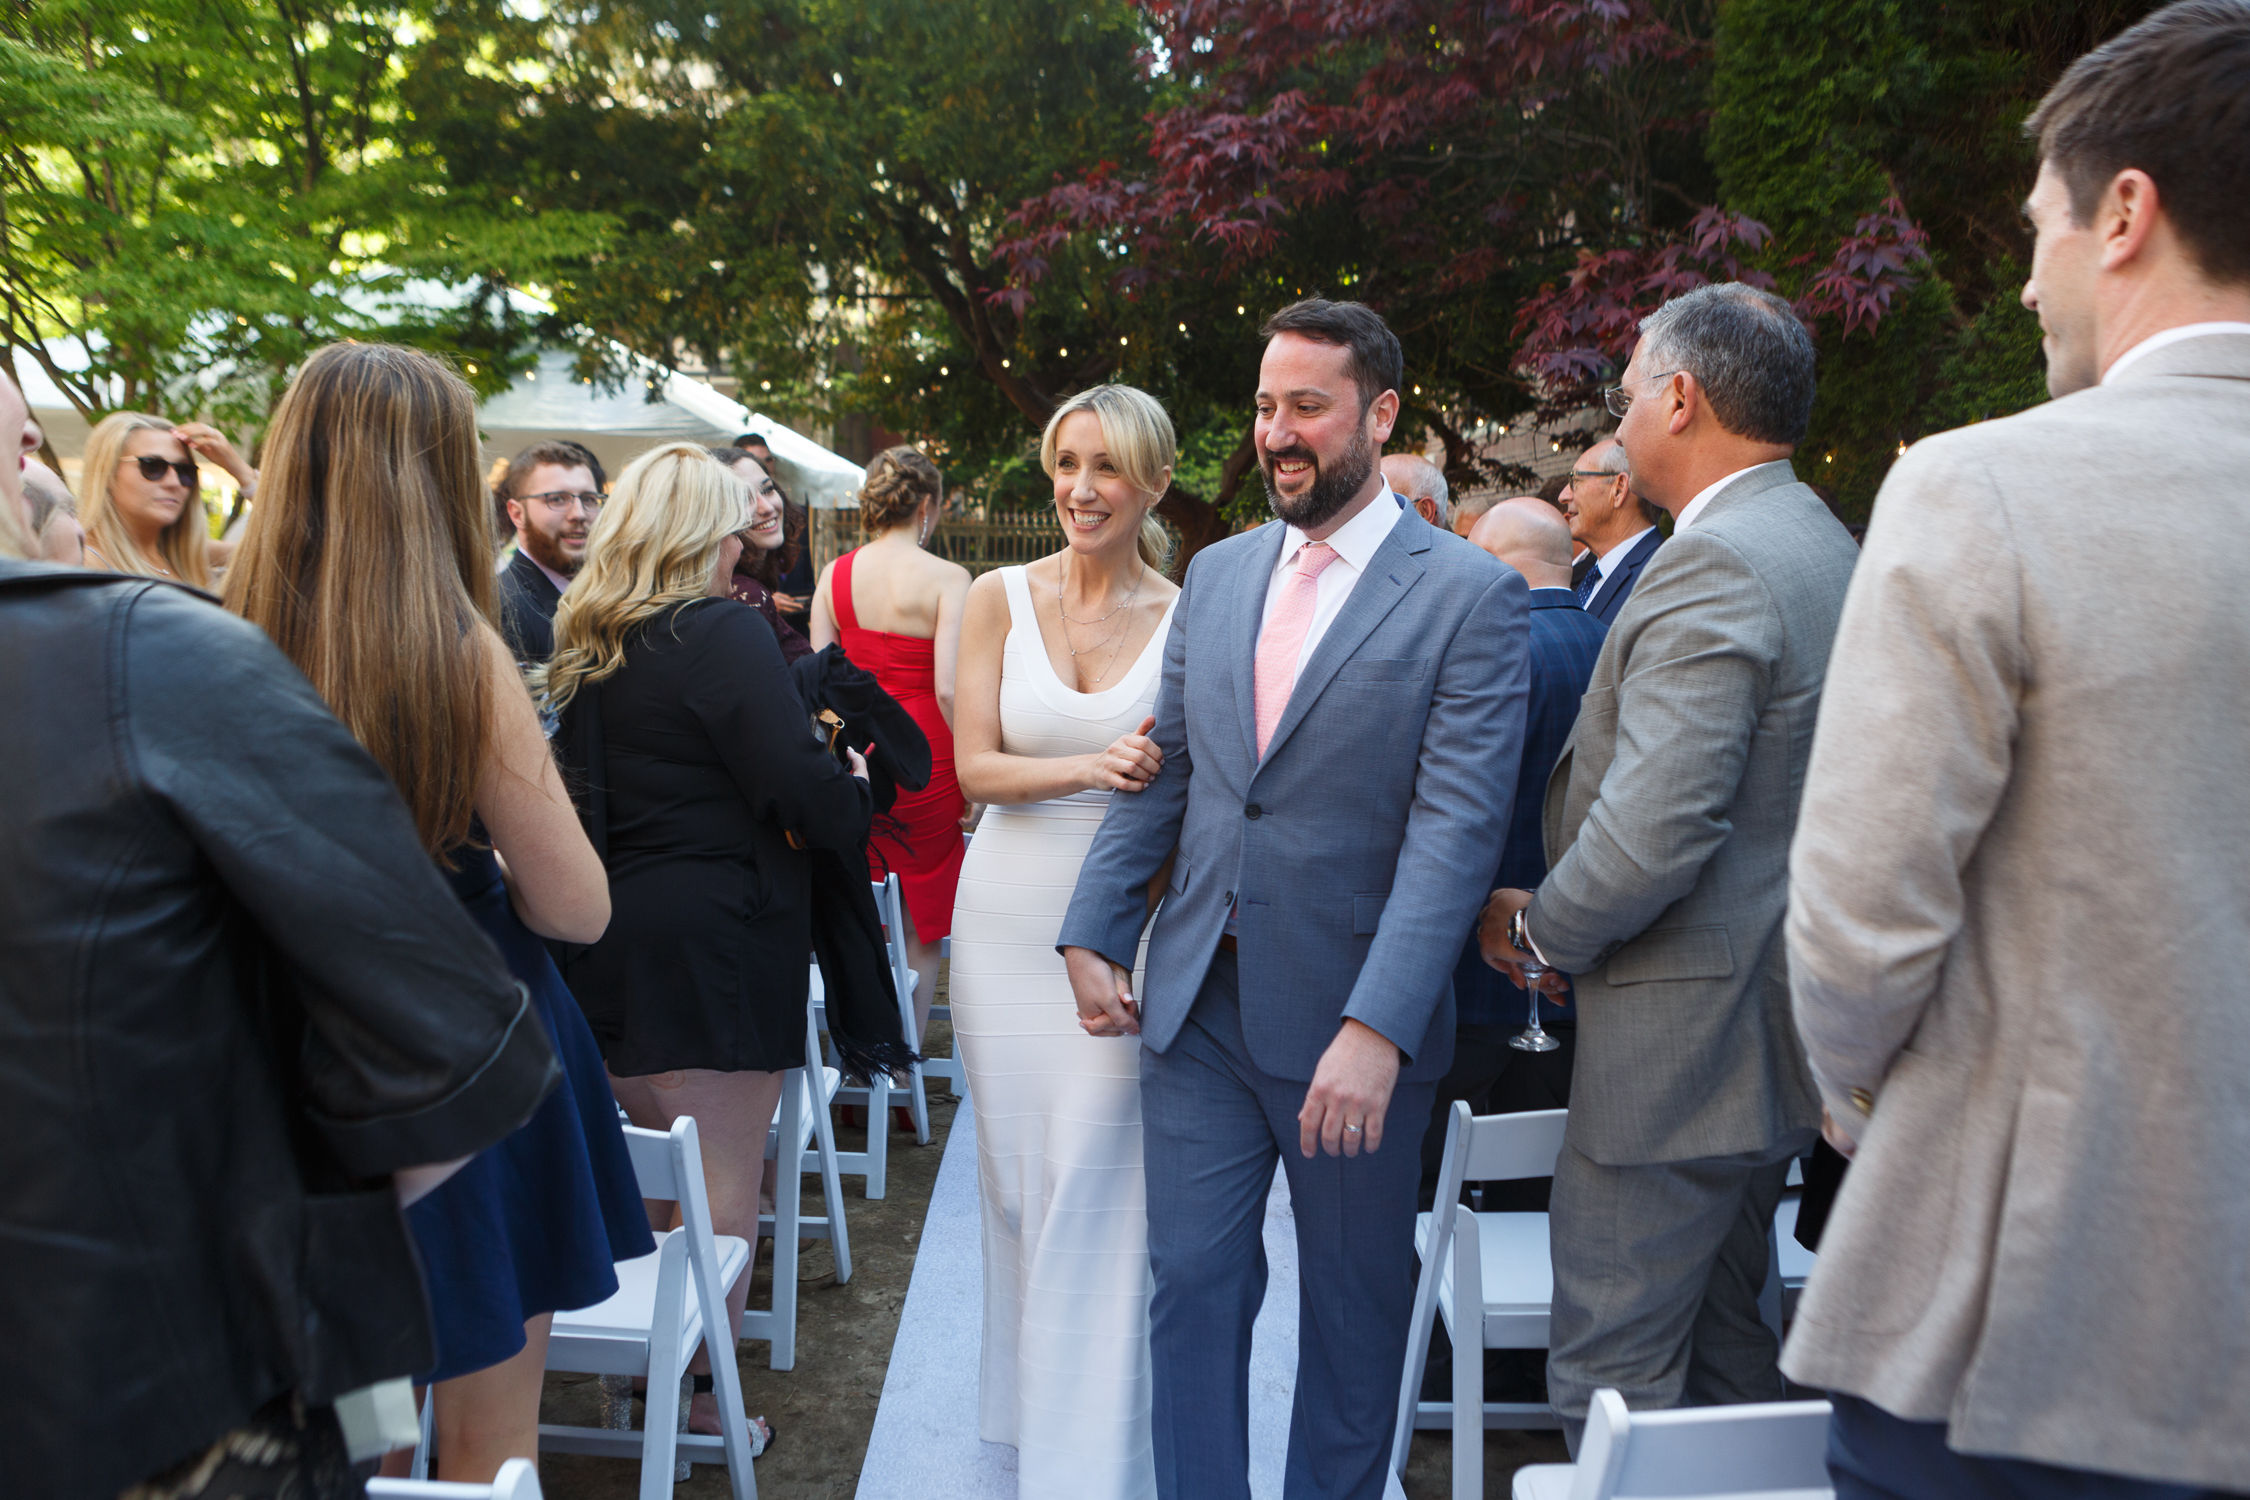 Brooklyn Wedding Photographer _ Jonathan Heisler _ 5112019 _009.jpg